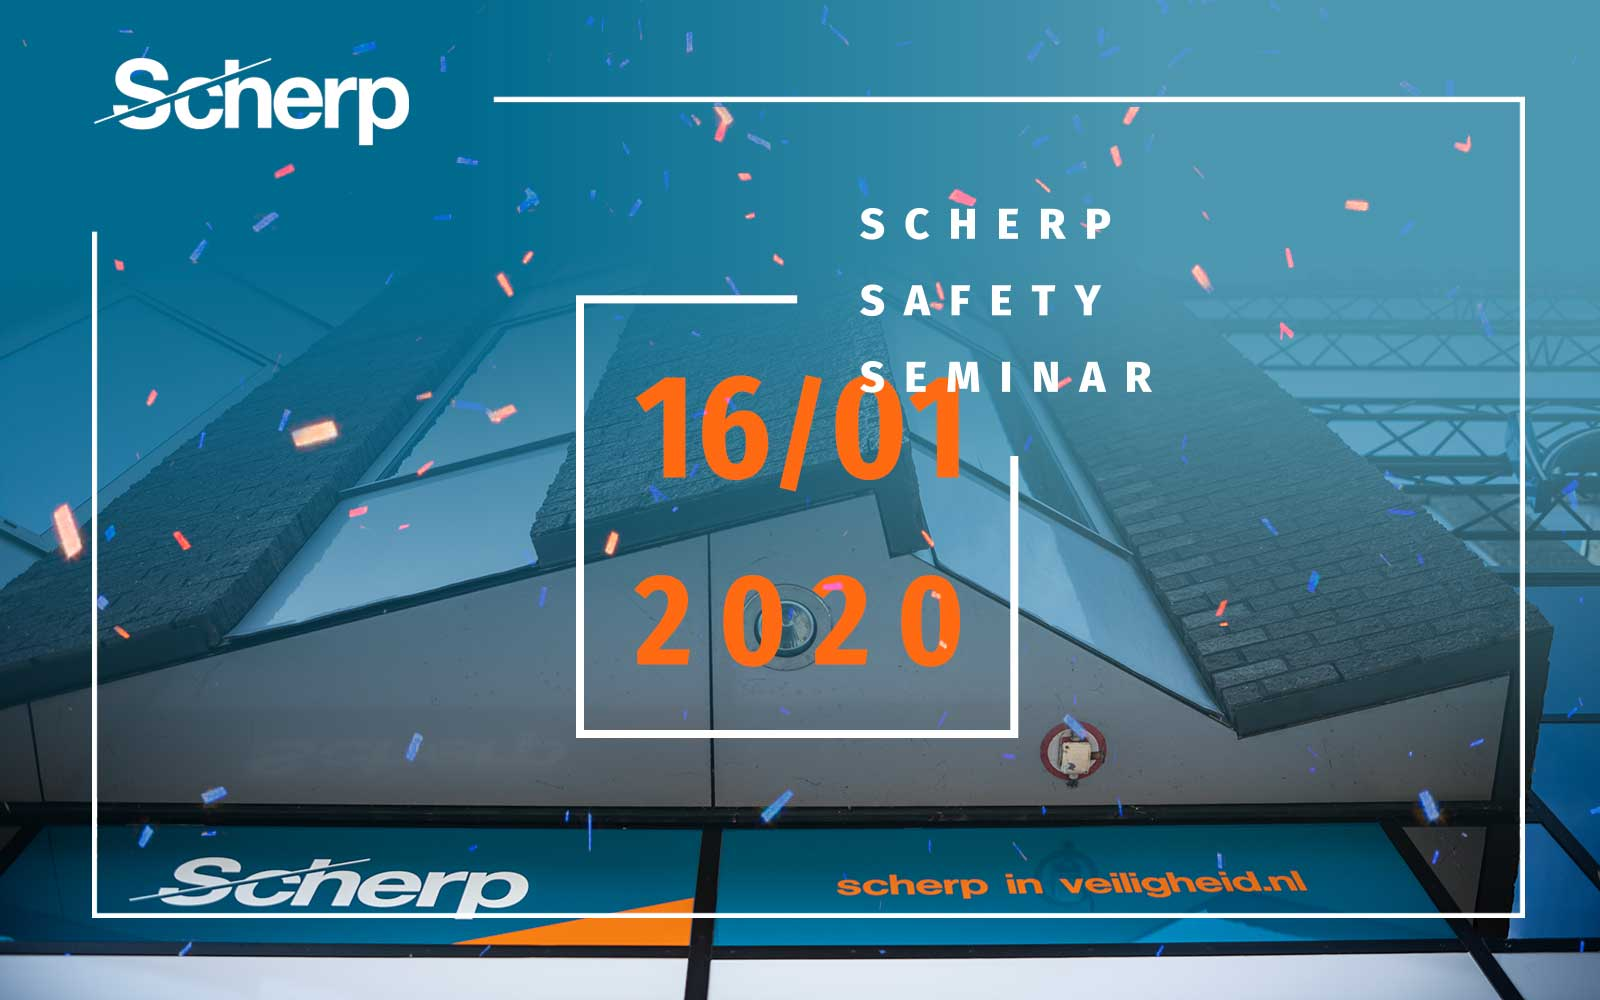 Scherp Safety Seminar